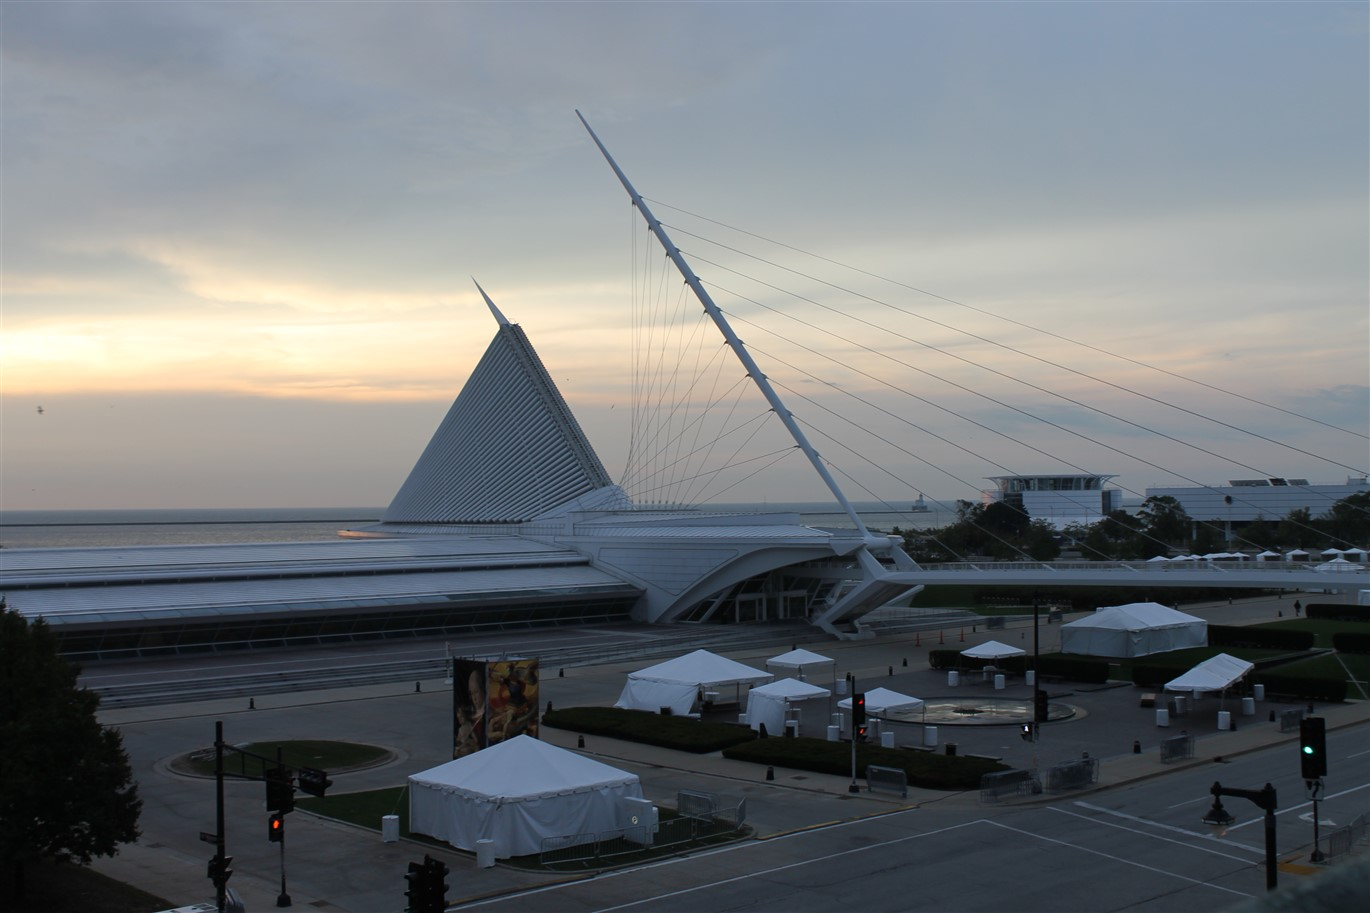 2014 09 20 5 Milwaukee.jpg